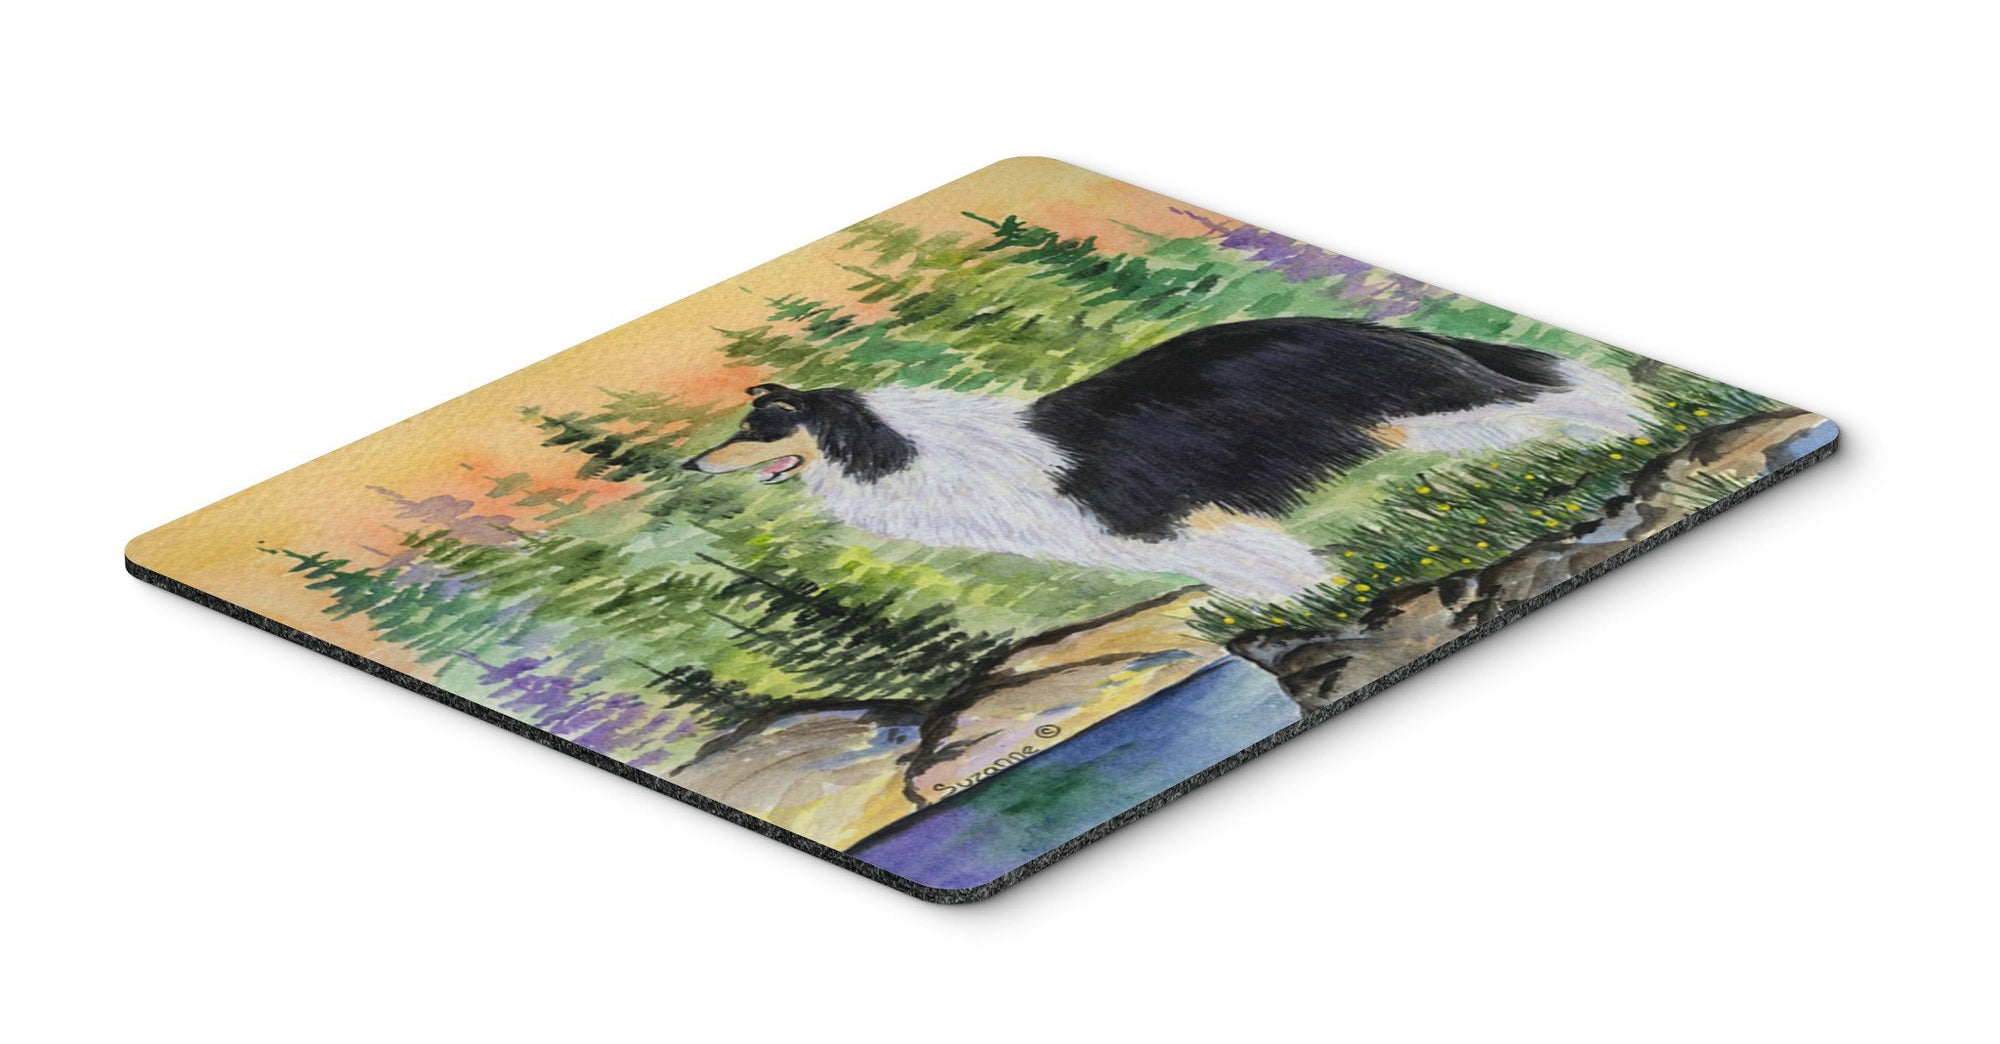 Collie Mouse pad, hot pad, or trivet by Caroline's Treasures